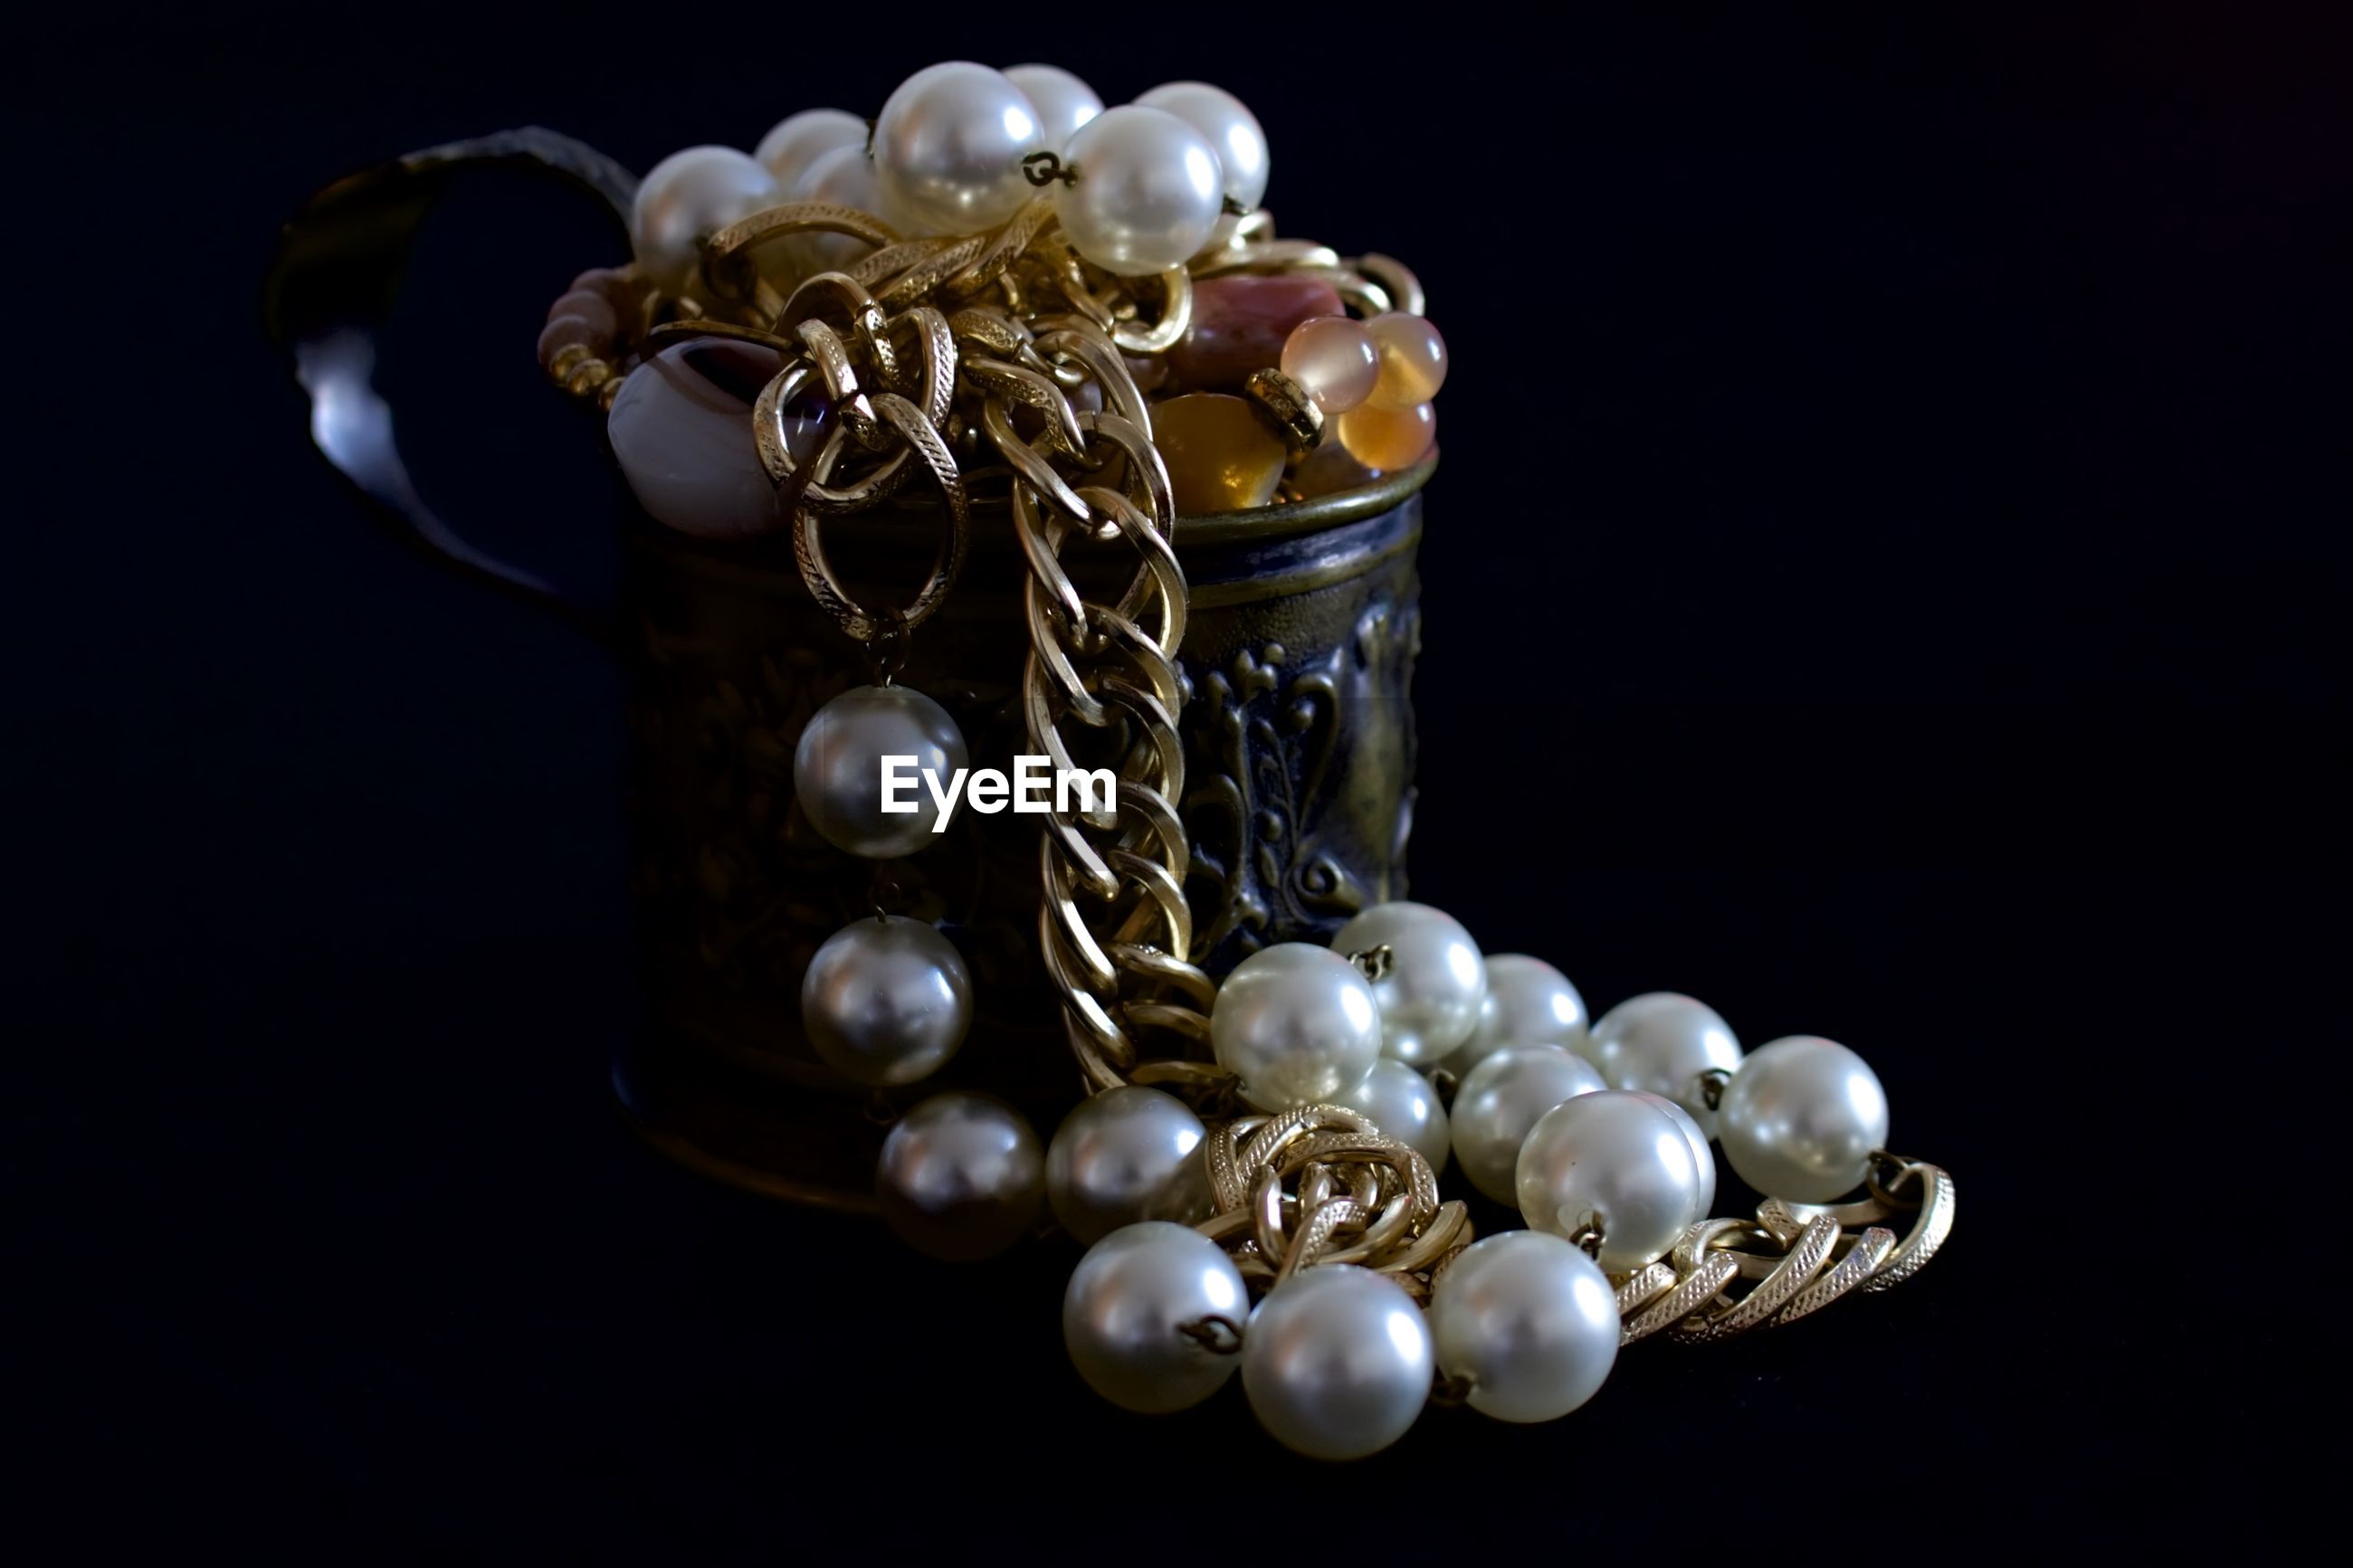 Close-up of pearl necklace in container against black background